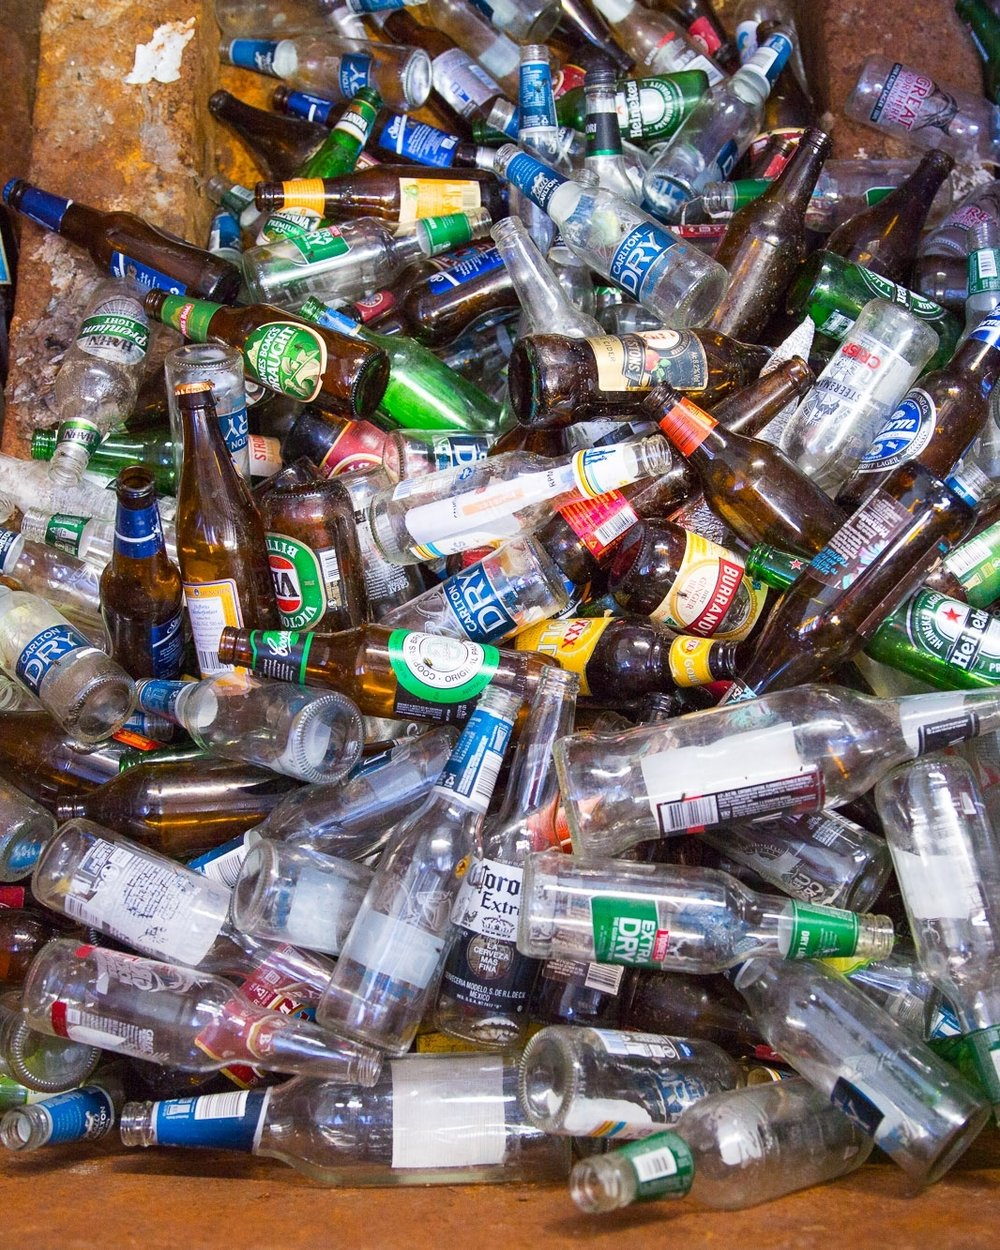 Glass Bottles & Jars: Never - Glass bottles and Jars NEVER break down. But they can be recycled in so many ways. Sending a glass jar to landfill instead of putting it in the recycle bin is literally the same as dropping it on the ground and knowing it will be there forever.